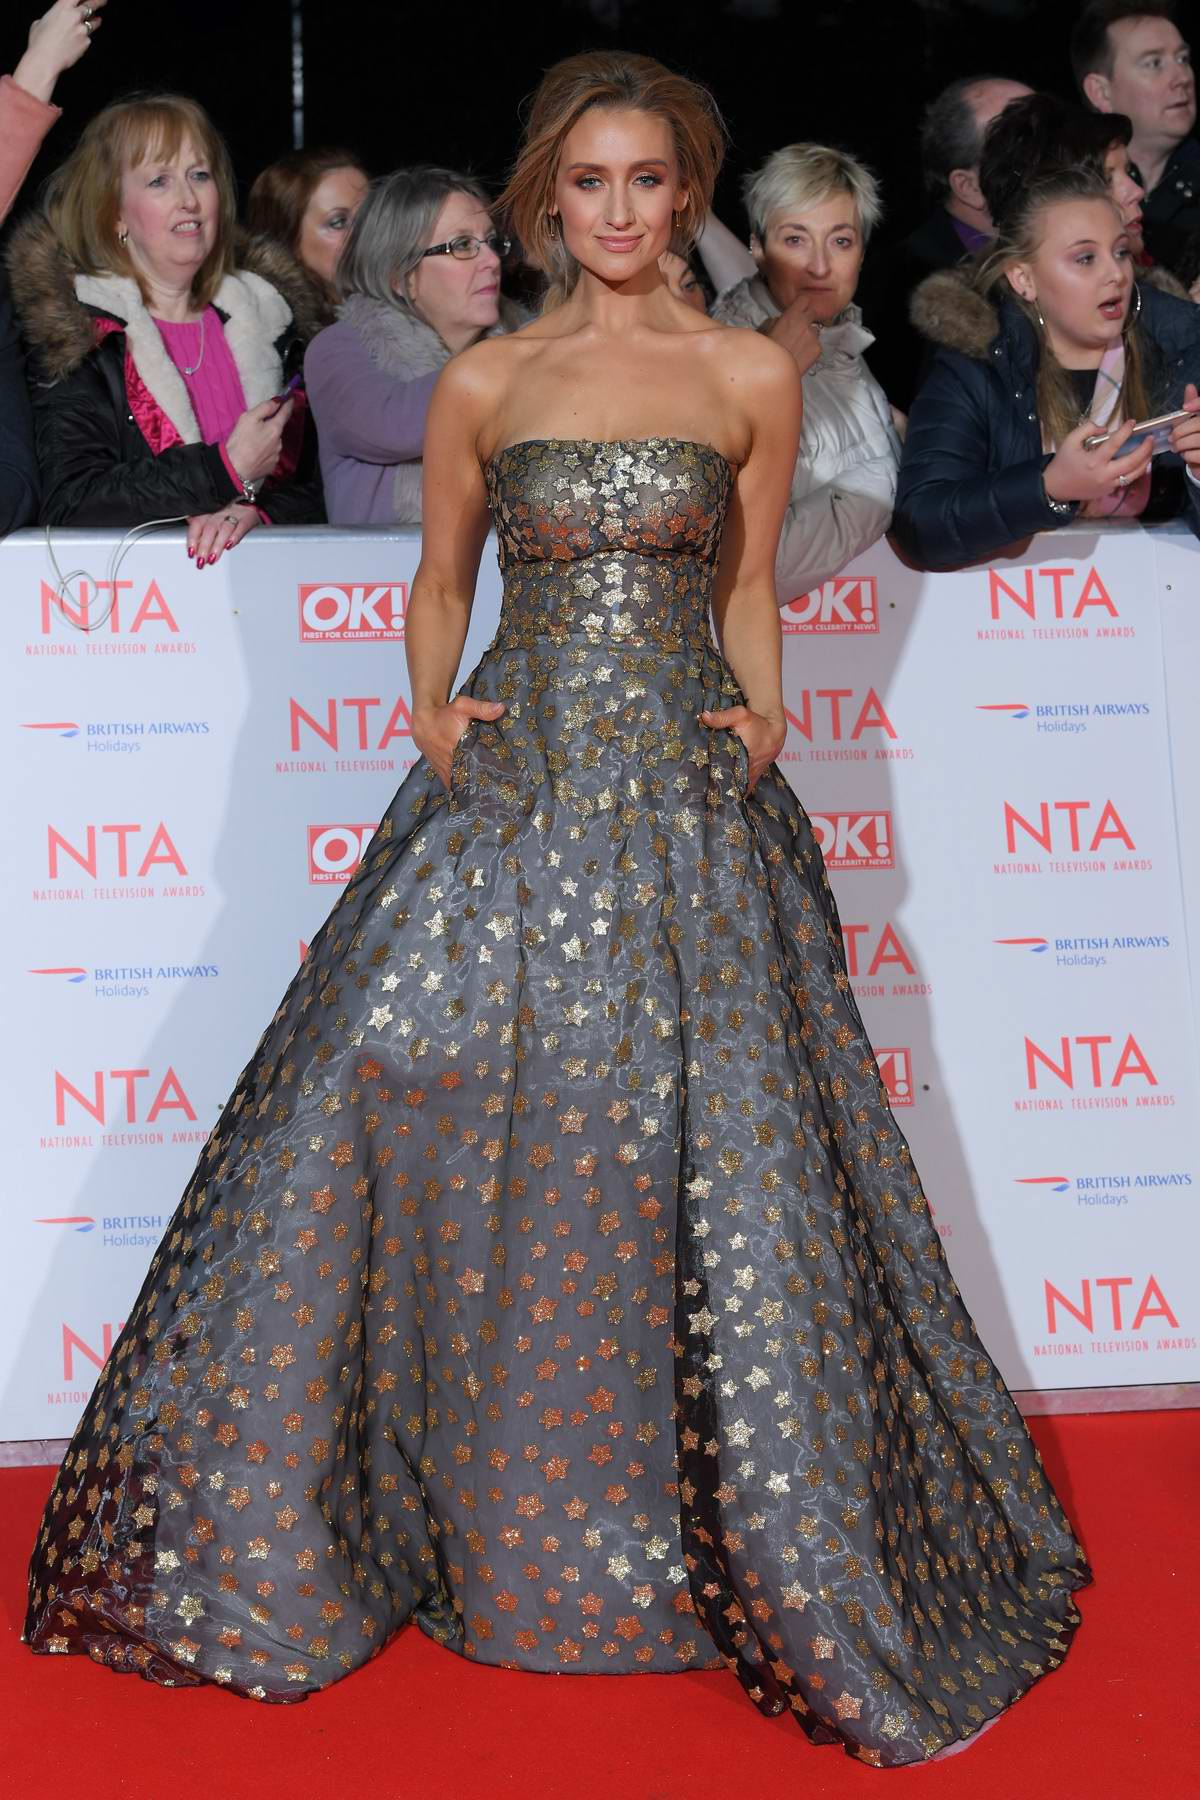 Catherine Tyldesley attends National Television Awards at The O2 Arena in London